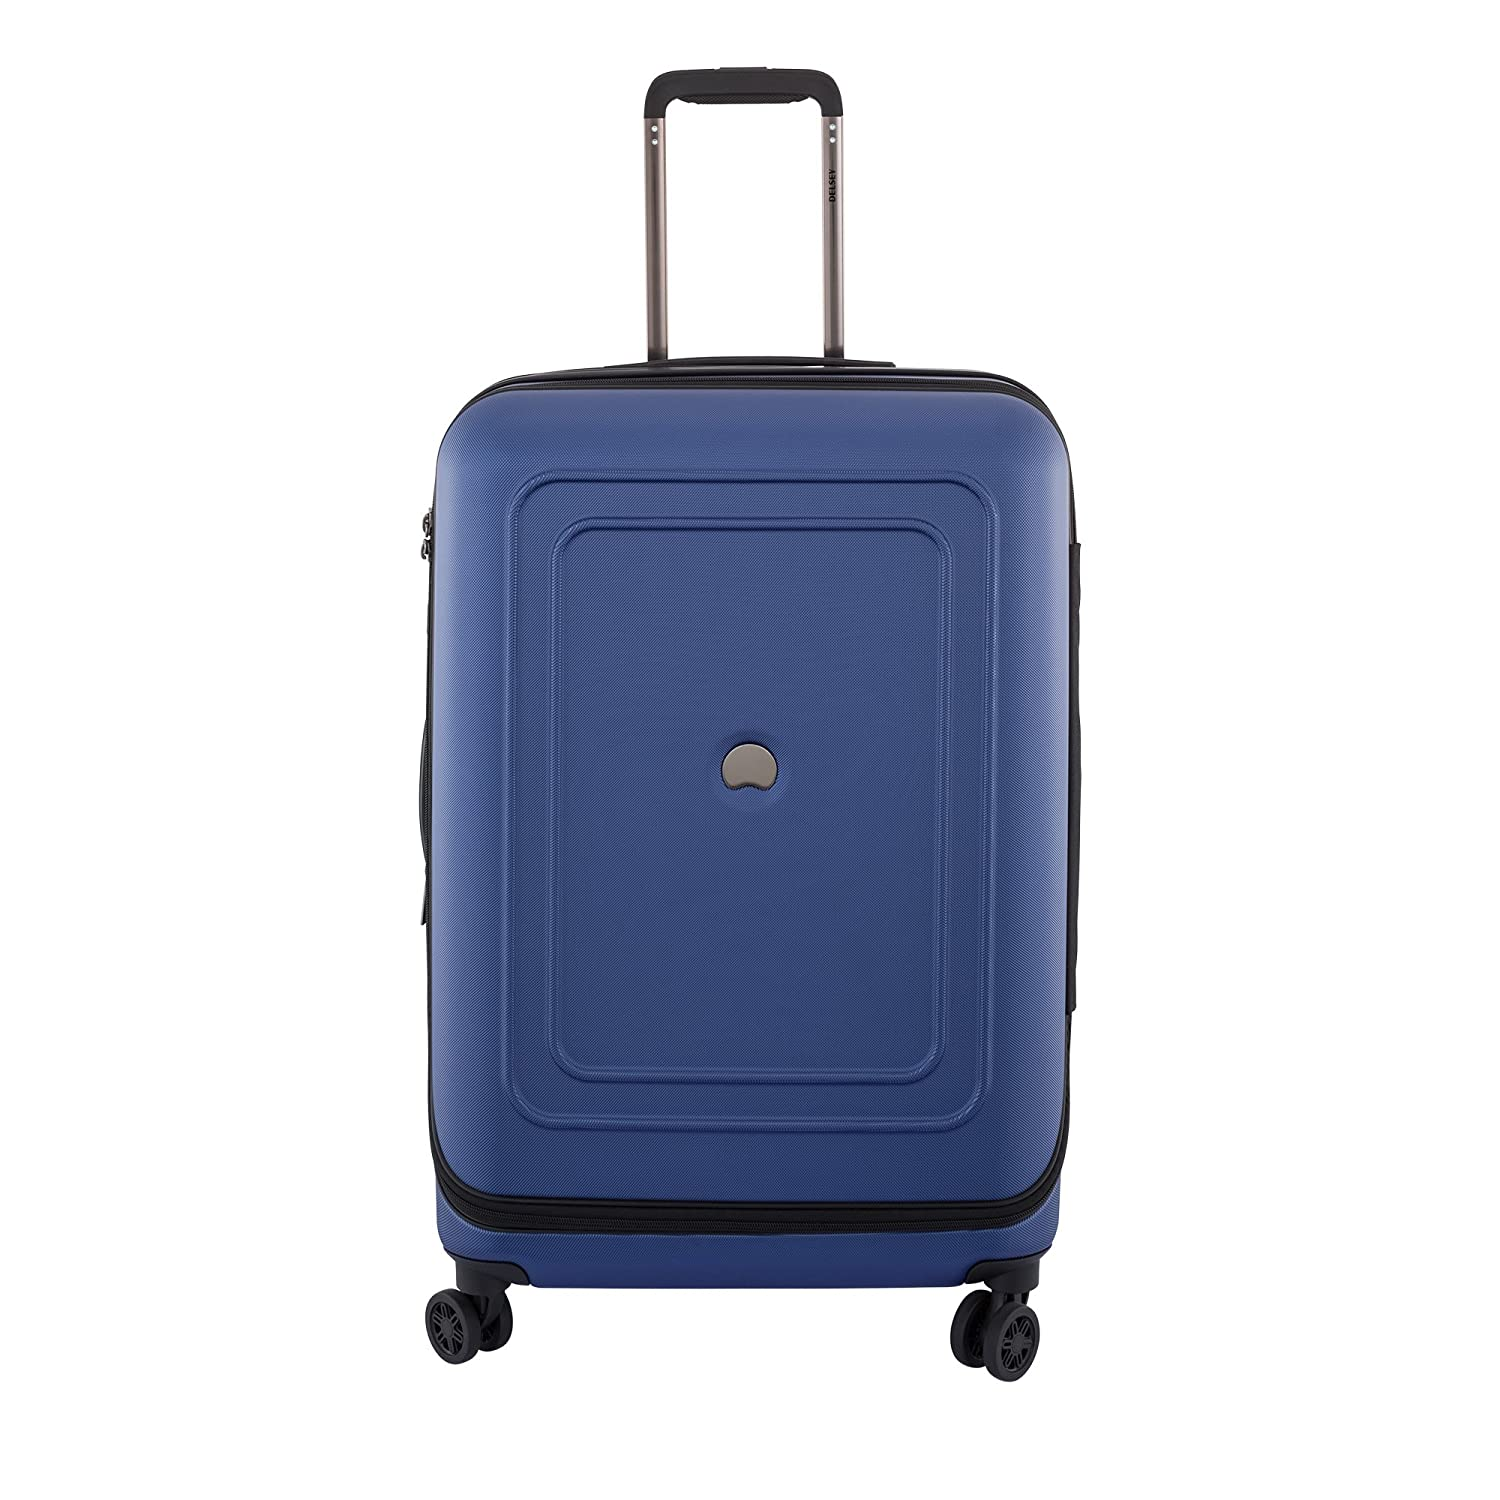 45416191a Amazon.com | DELSEY Paris Luggage Cruise Lite Hardside 25 inch Expandable  Spinner Suitcase with Lock, Blue | Carry-Ons